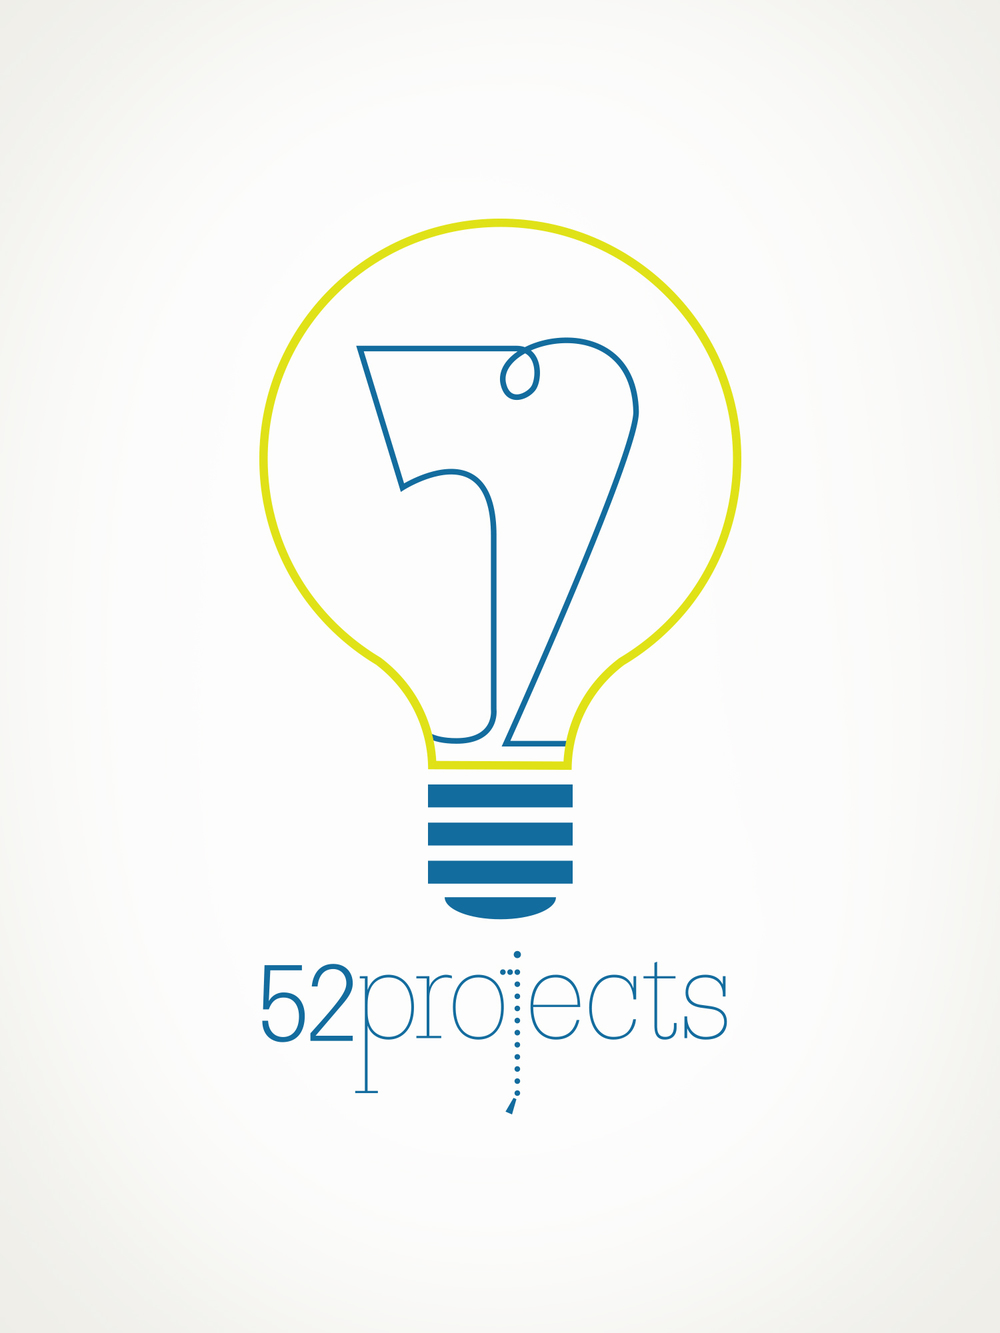 52projects, inc. : Small business solutions increasing efficiency, engagement, and effectiveness.